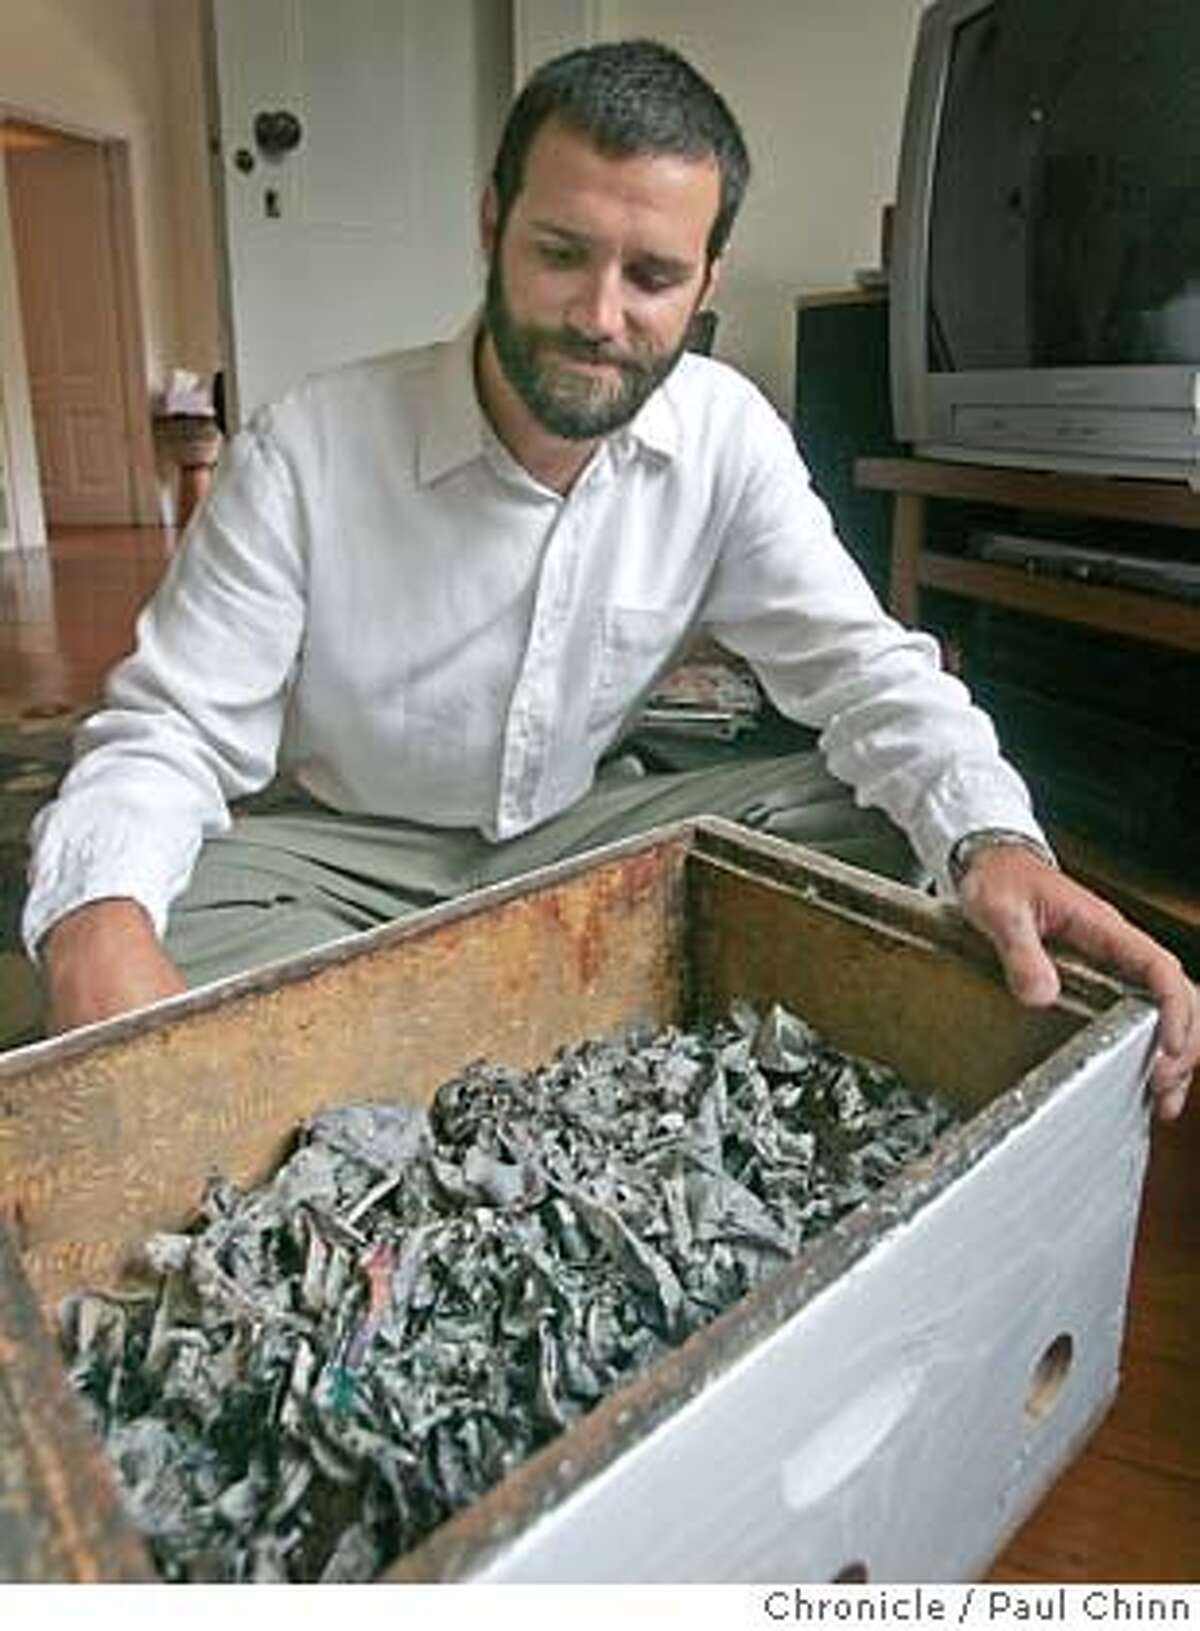 Timothy Burroughs, Climate Action Coordinator for the city of Berkeley, keeps a worm bin to produce compost in the living room of his home in Berkeley, Calif. on Friday, July 6, 2007. PAUL CHINN/The Chronicle **Timothy Burroughs